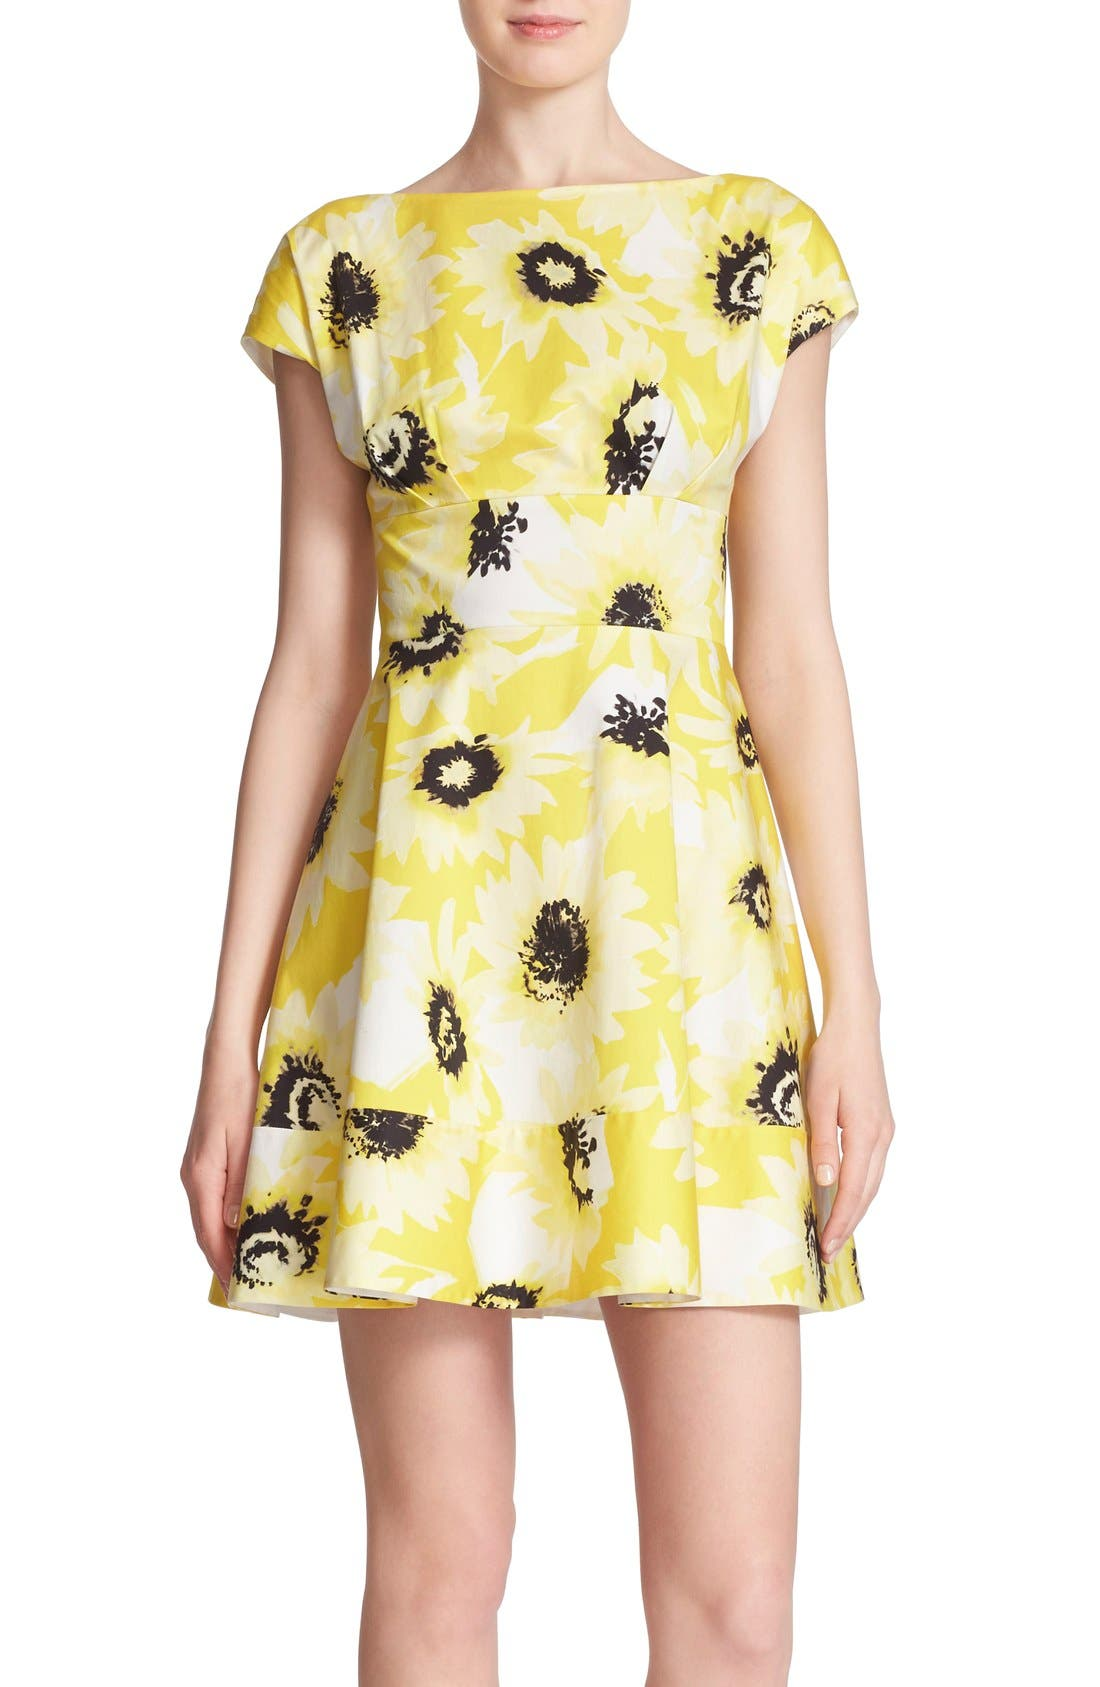 Alternate Image 1 Selected - kate spade new york 'fiorella' floral print dress